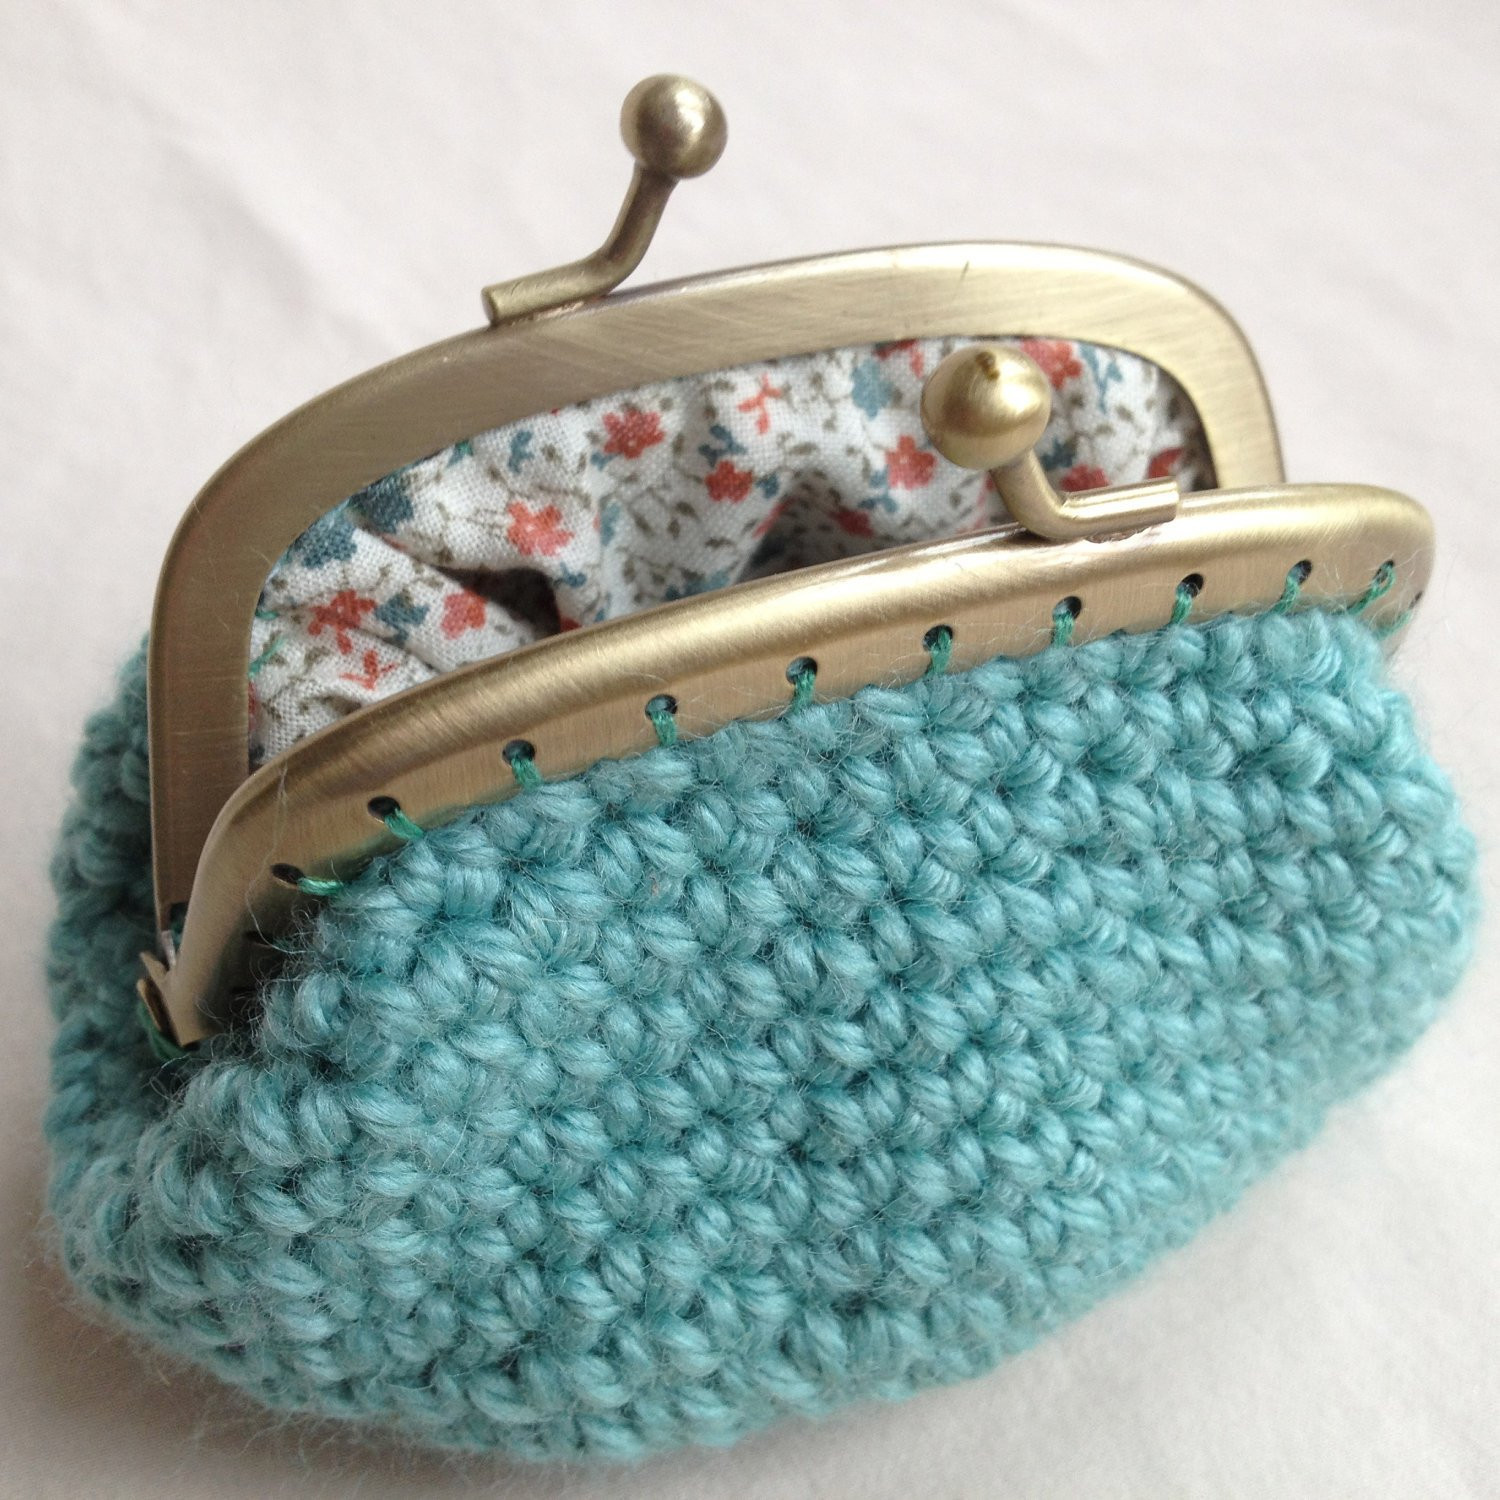 Crochet Purse Pattern Awesome Sea Green Crochet Coin Purse Of Adorable 44 Photos Crochet Purse Pattern